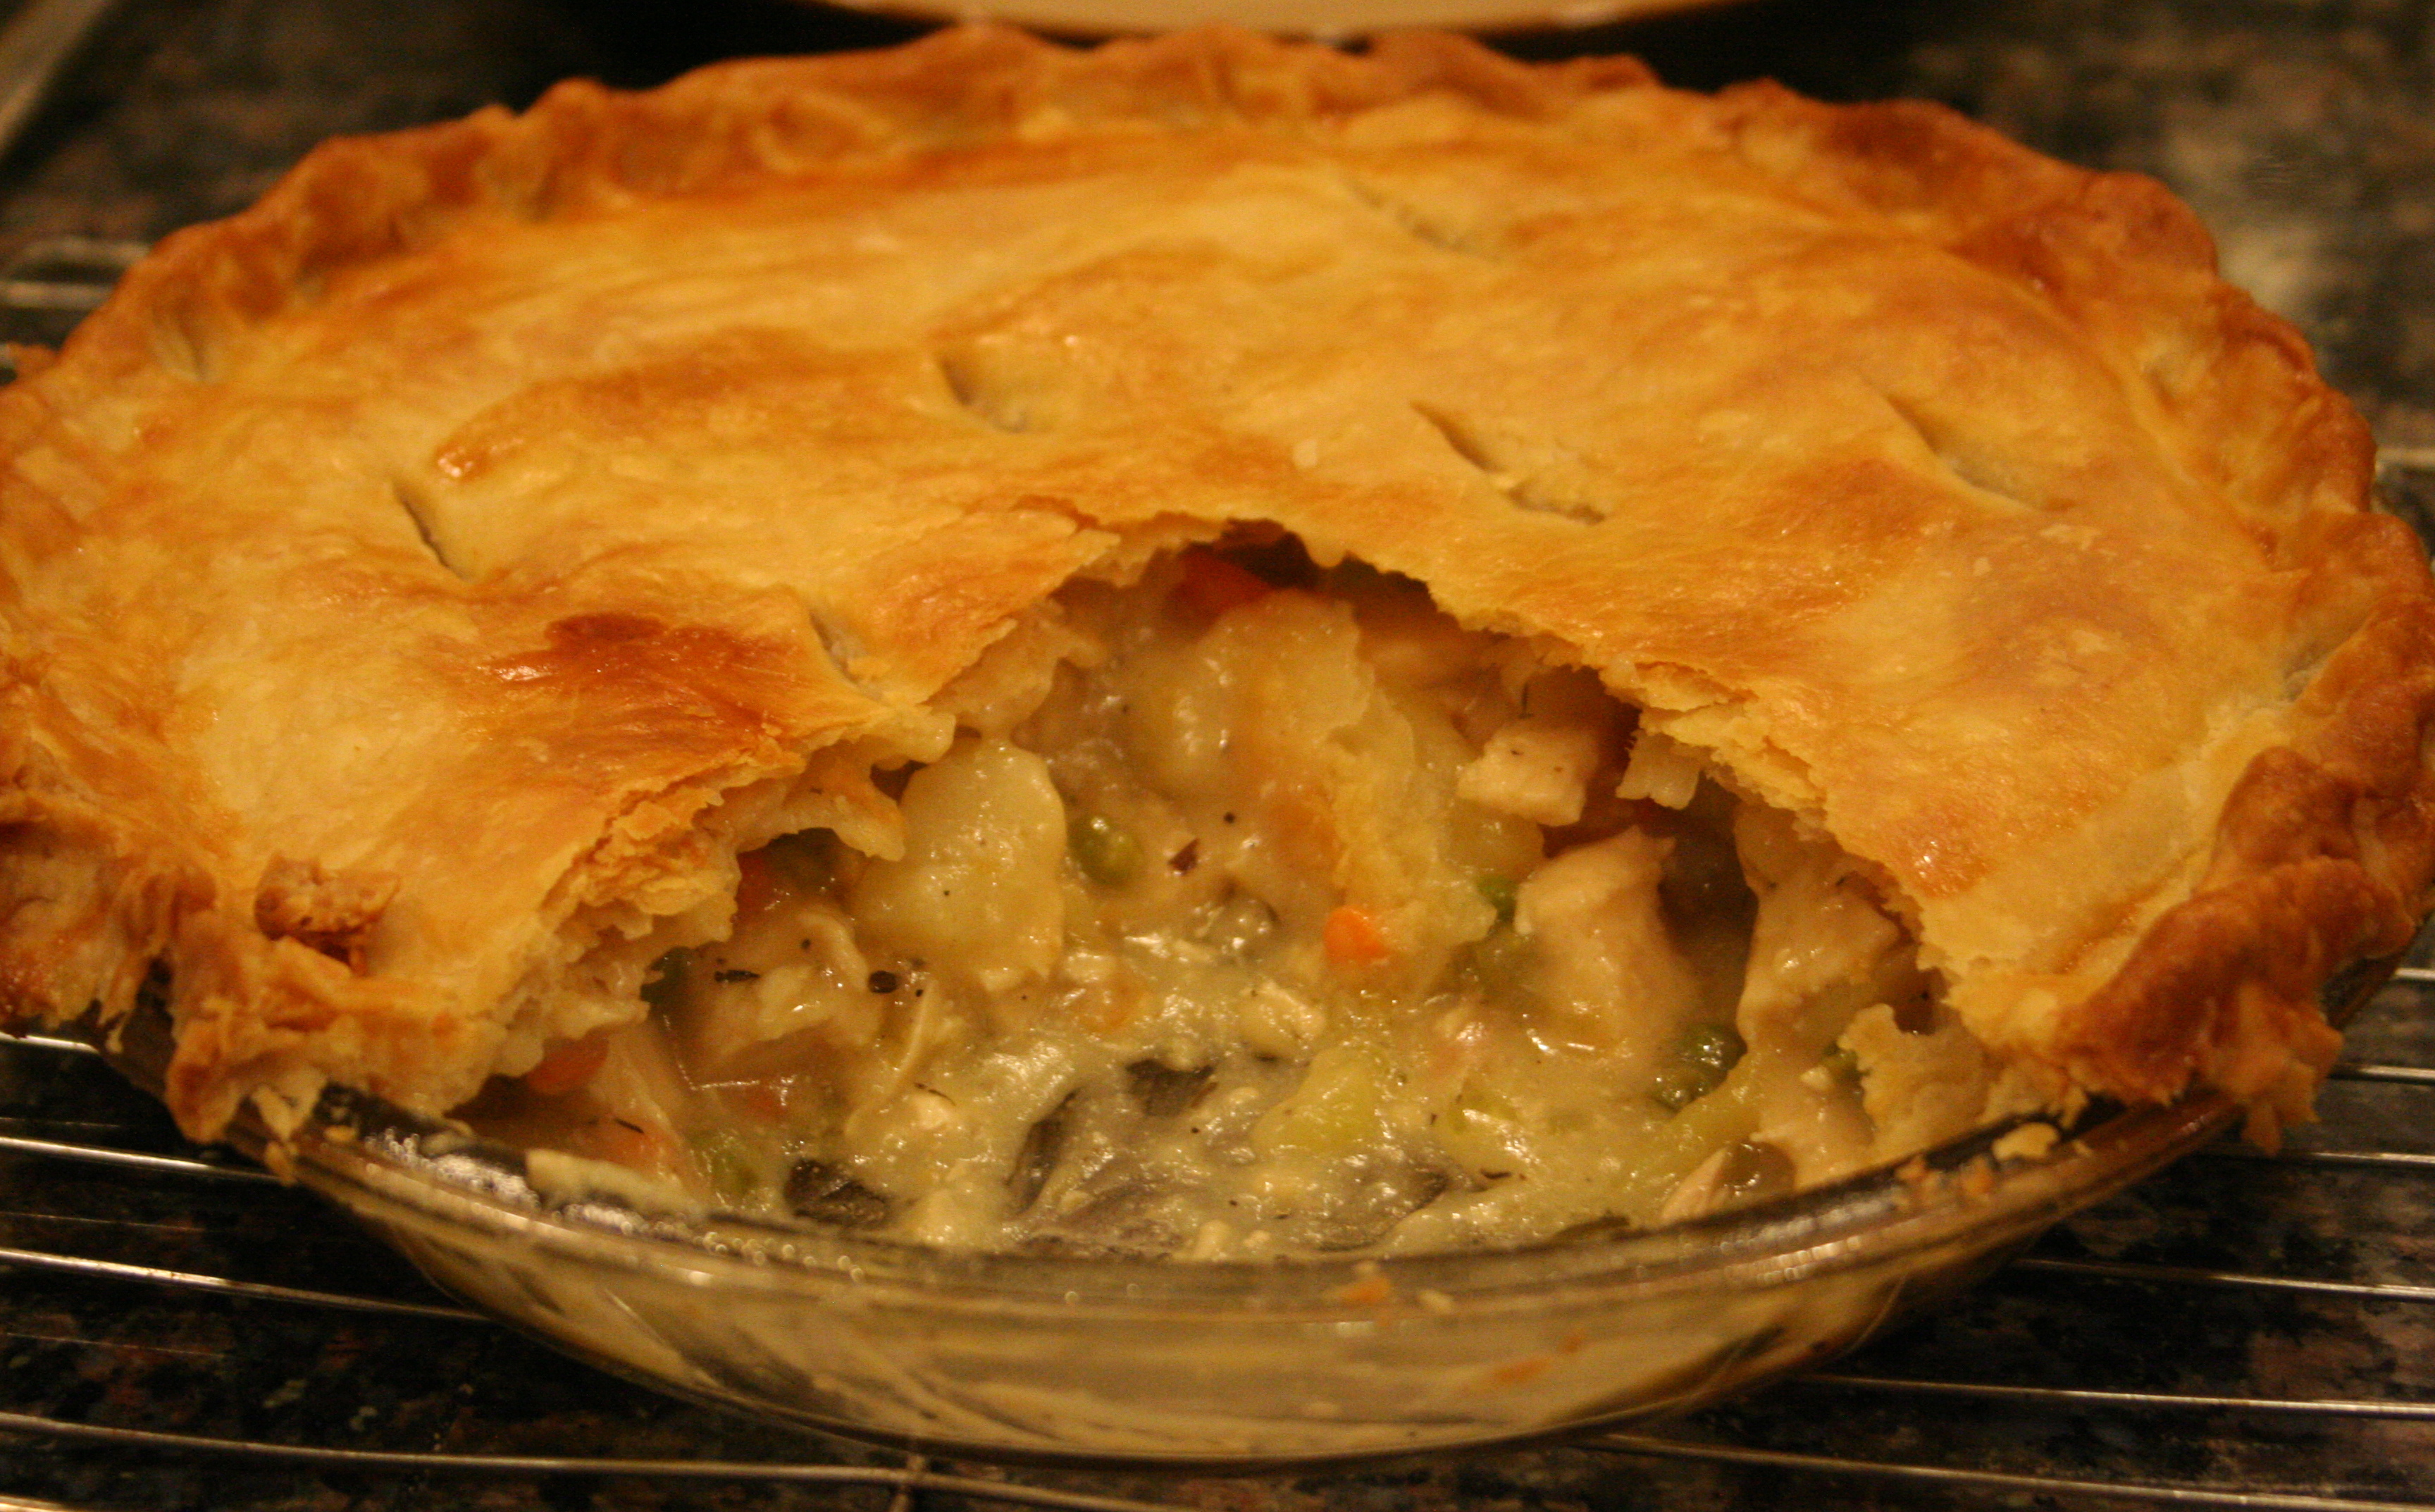 Lindas bee hive homemade pot pie warms the soul and the house as i child i hated pot pie my granny made pot pie with fatty meat and very little flavor it was bland and i gagged on the meat forumfinder Images